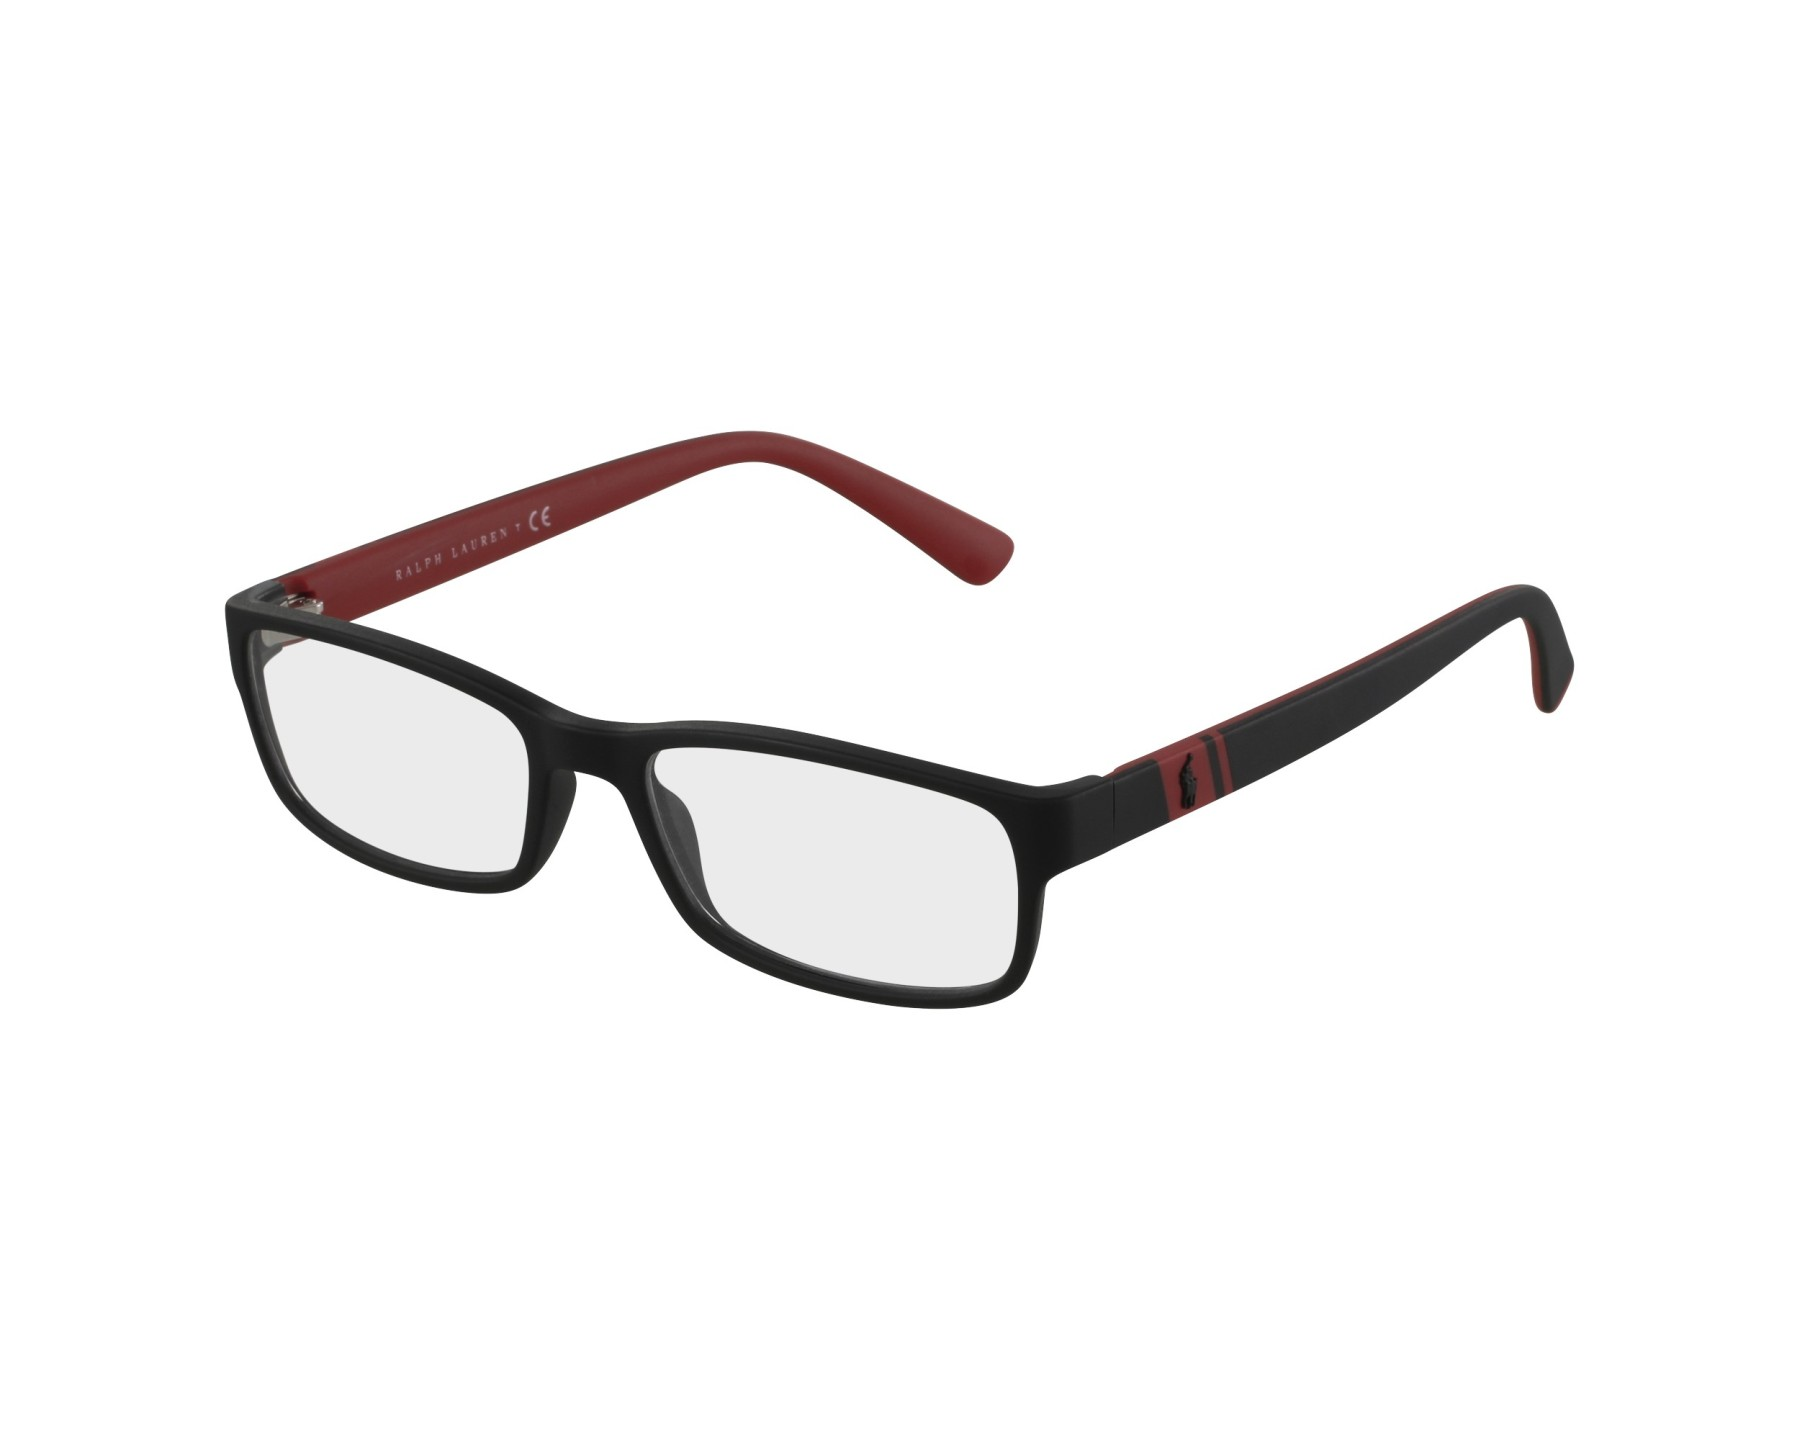 f4dcdfcd60e eyeglasses Polo Ralph Lauren PH-2154 5247 54-17 Grey Red front view